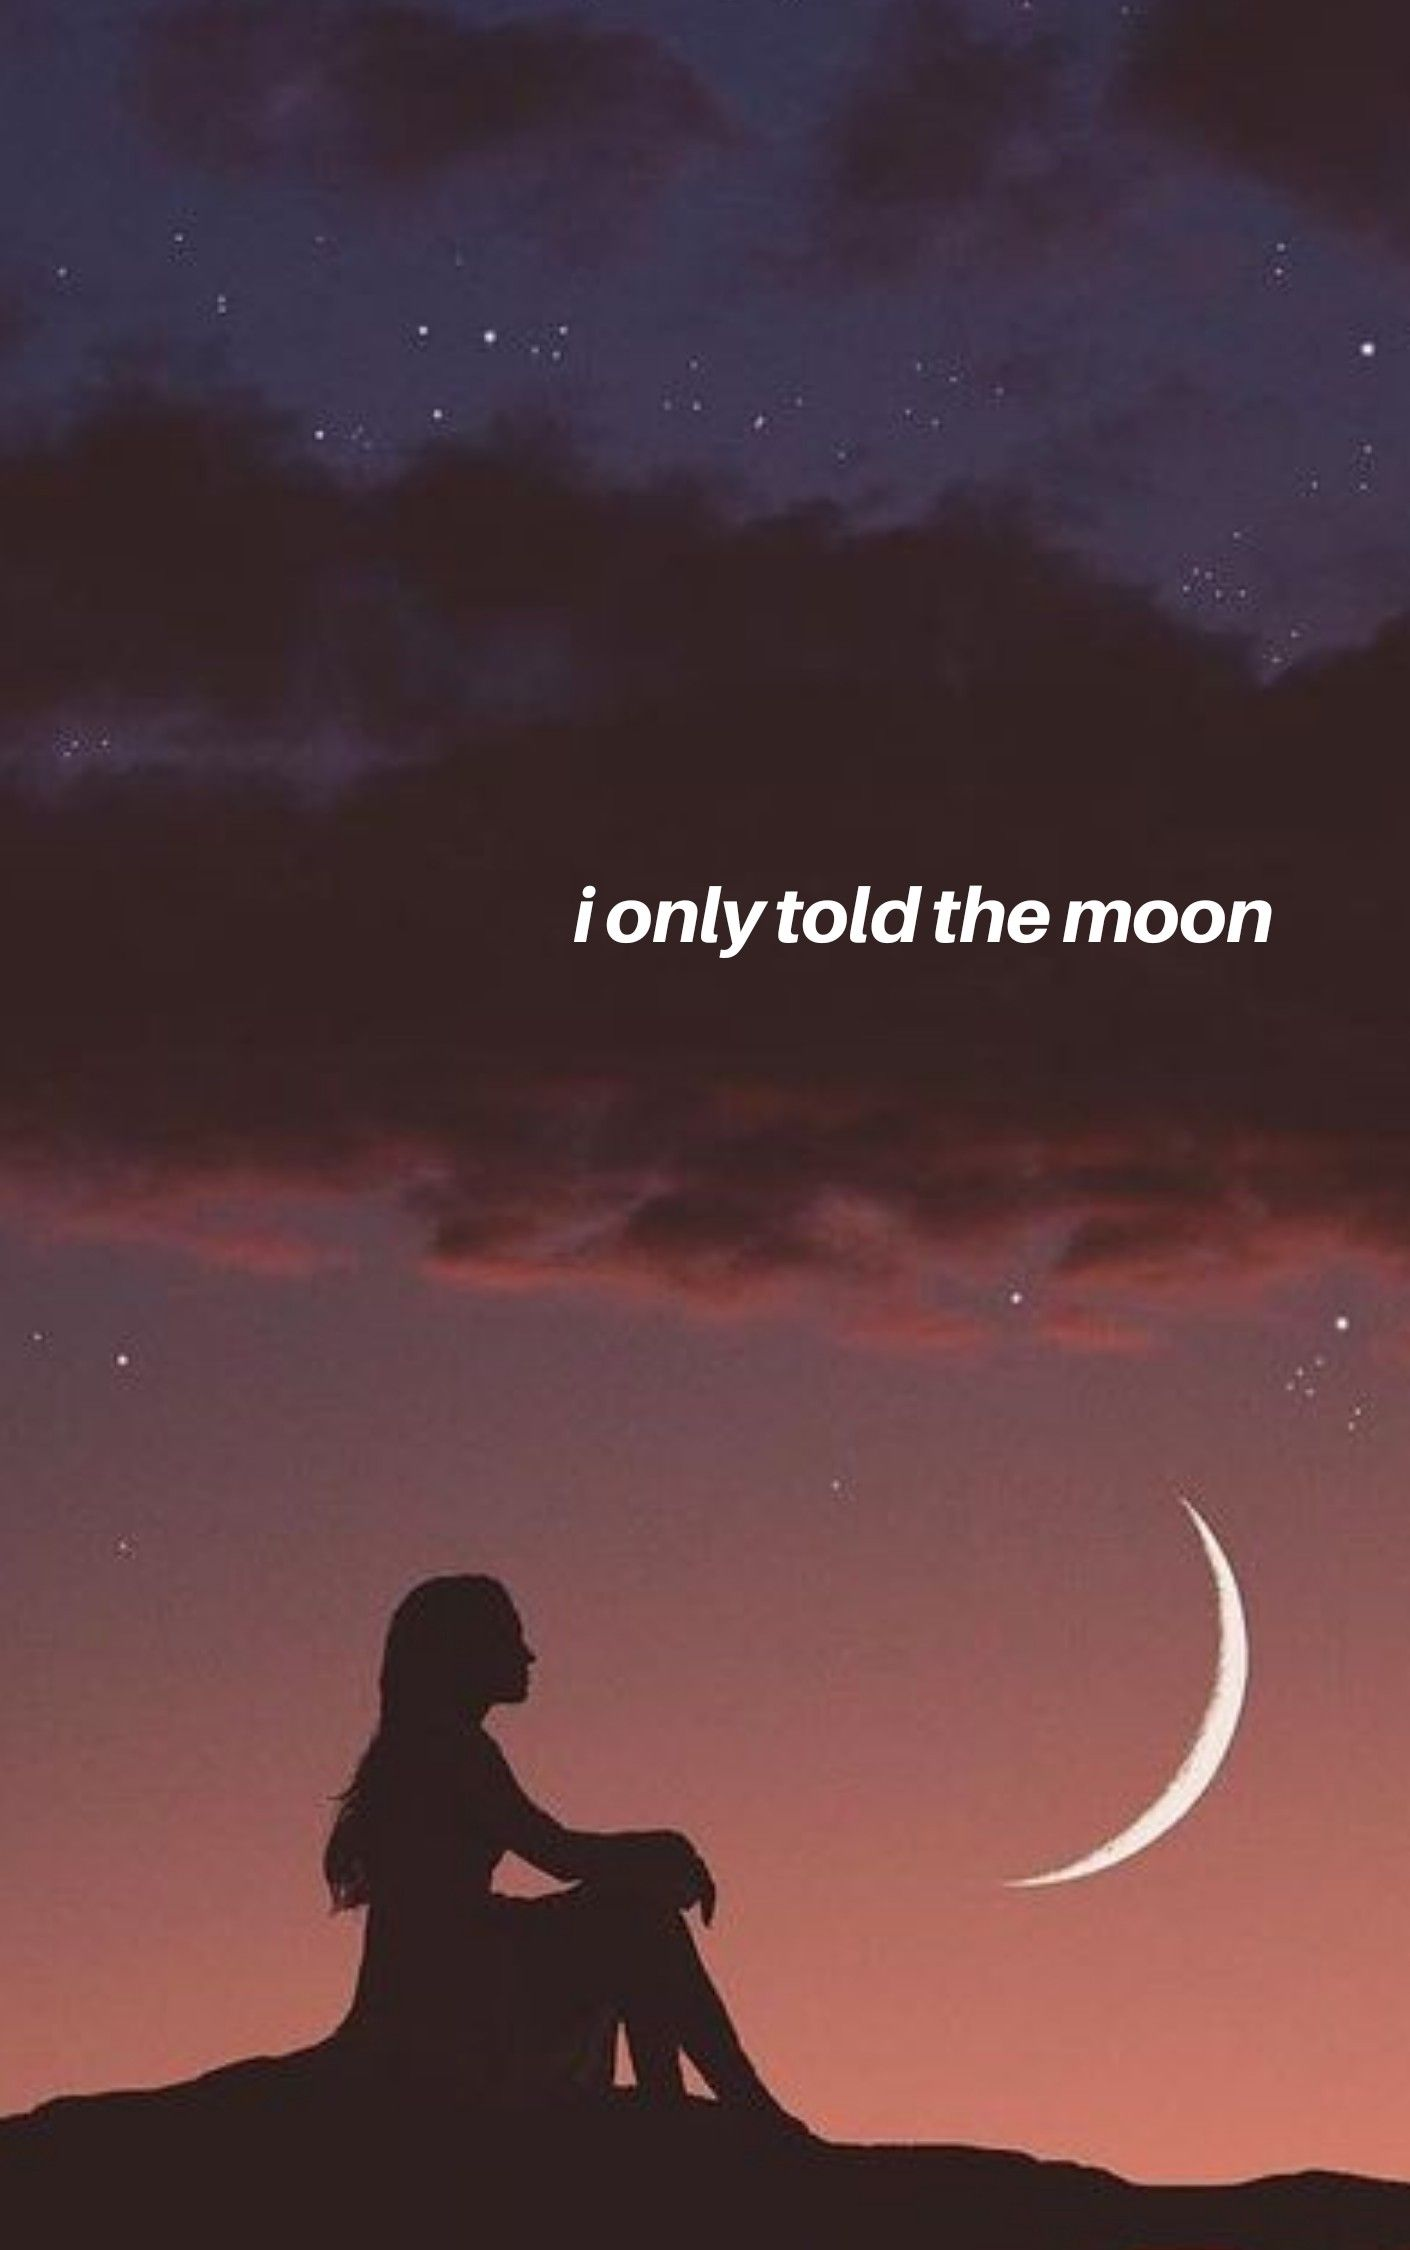 I Only Told The Moon By Camila Cabello Lyric Wallpaper Moon And Star Quotes Moon And Stars Wallpaper Song Lyrics Wallpaper